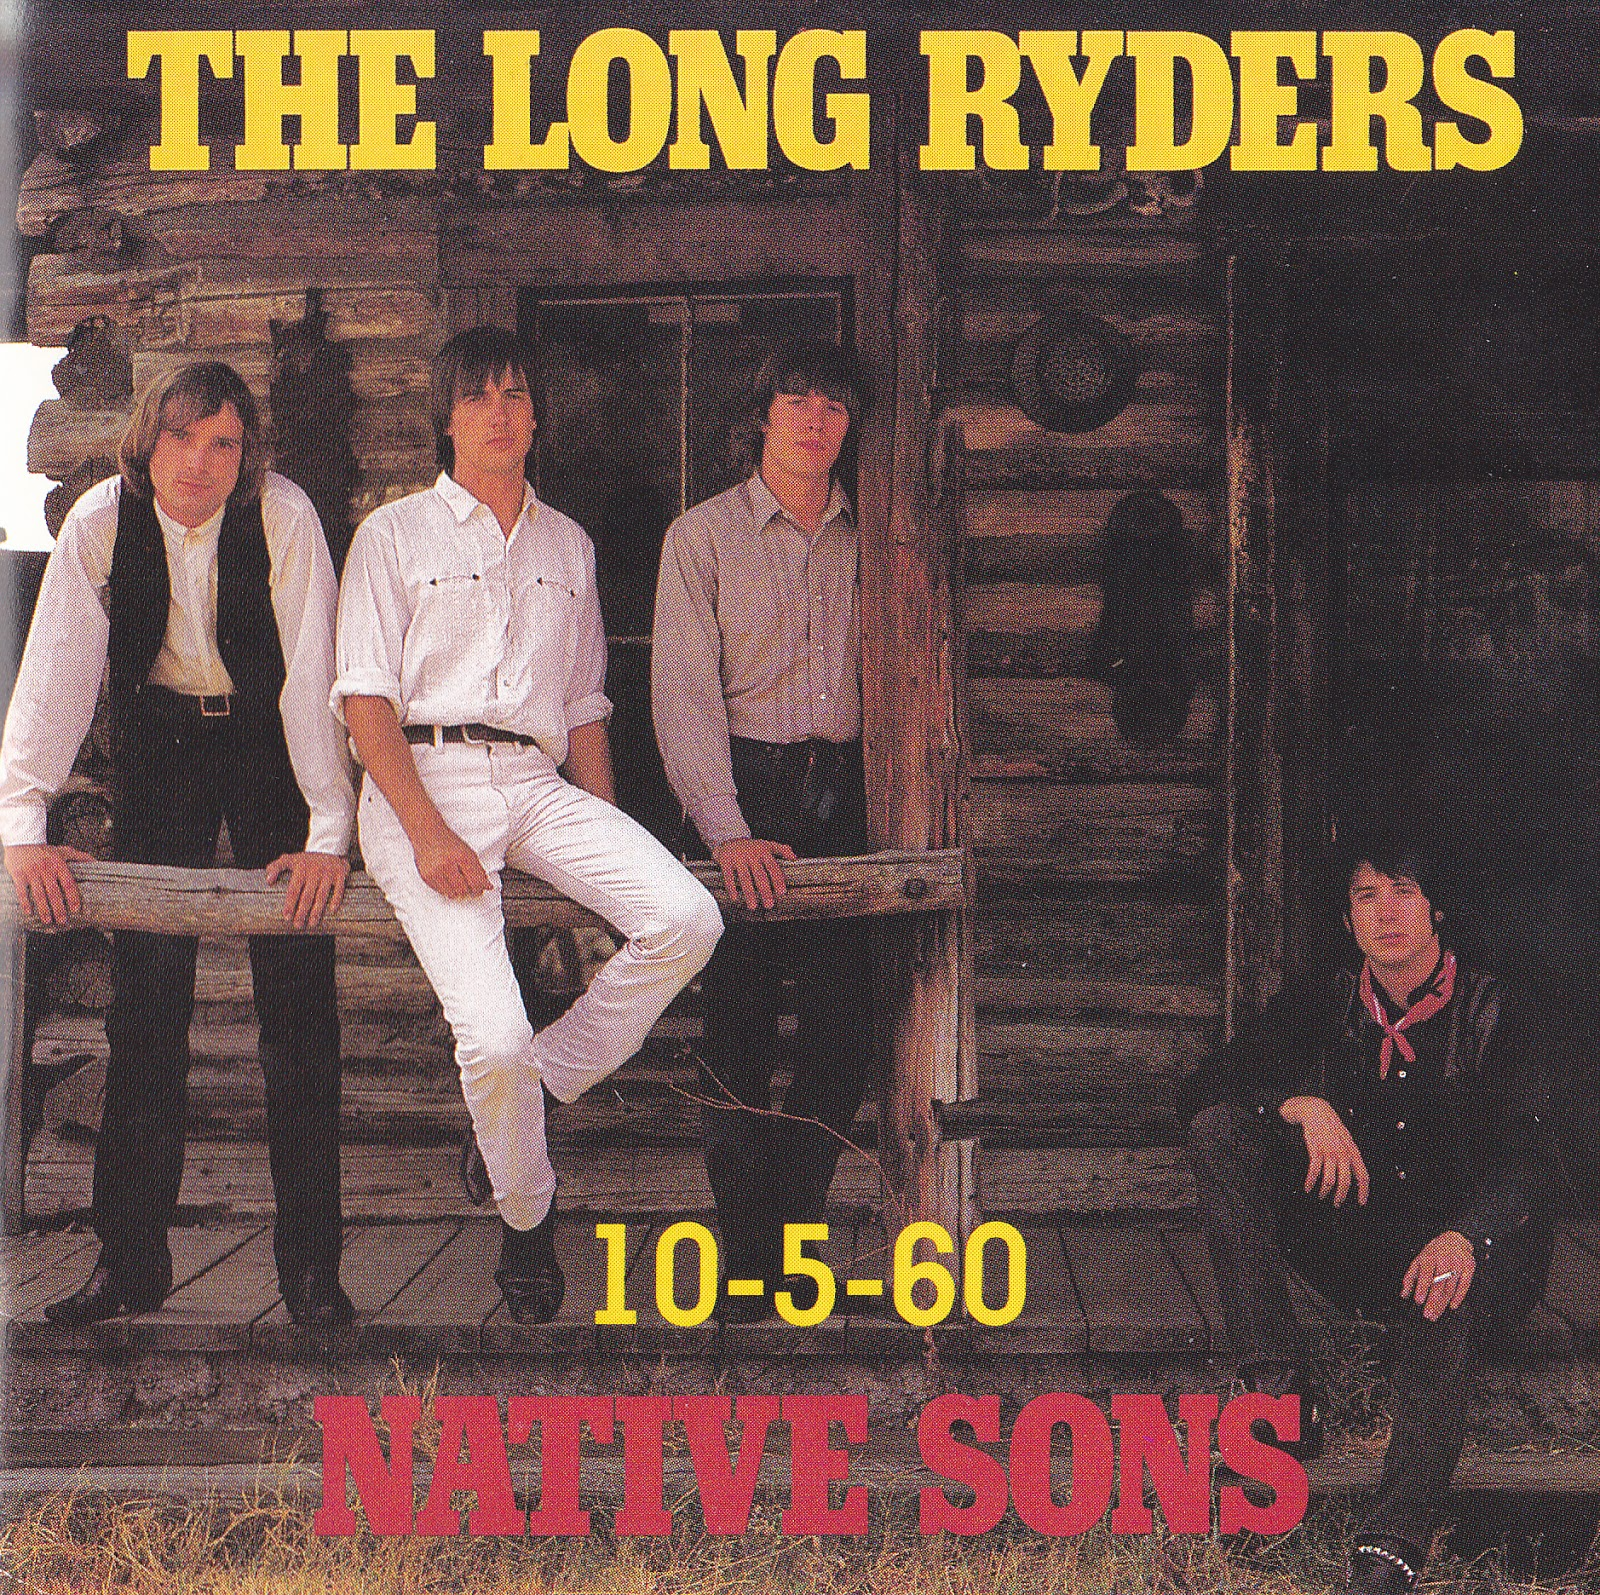 The Long Ryders Native Sons - 10-5-60